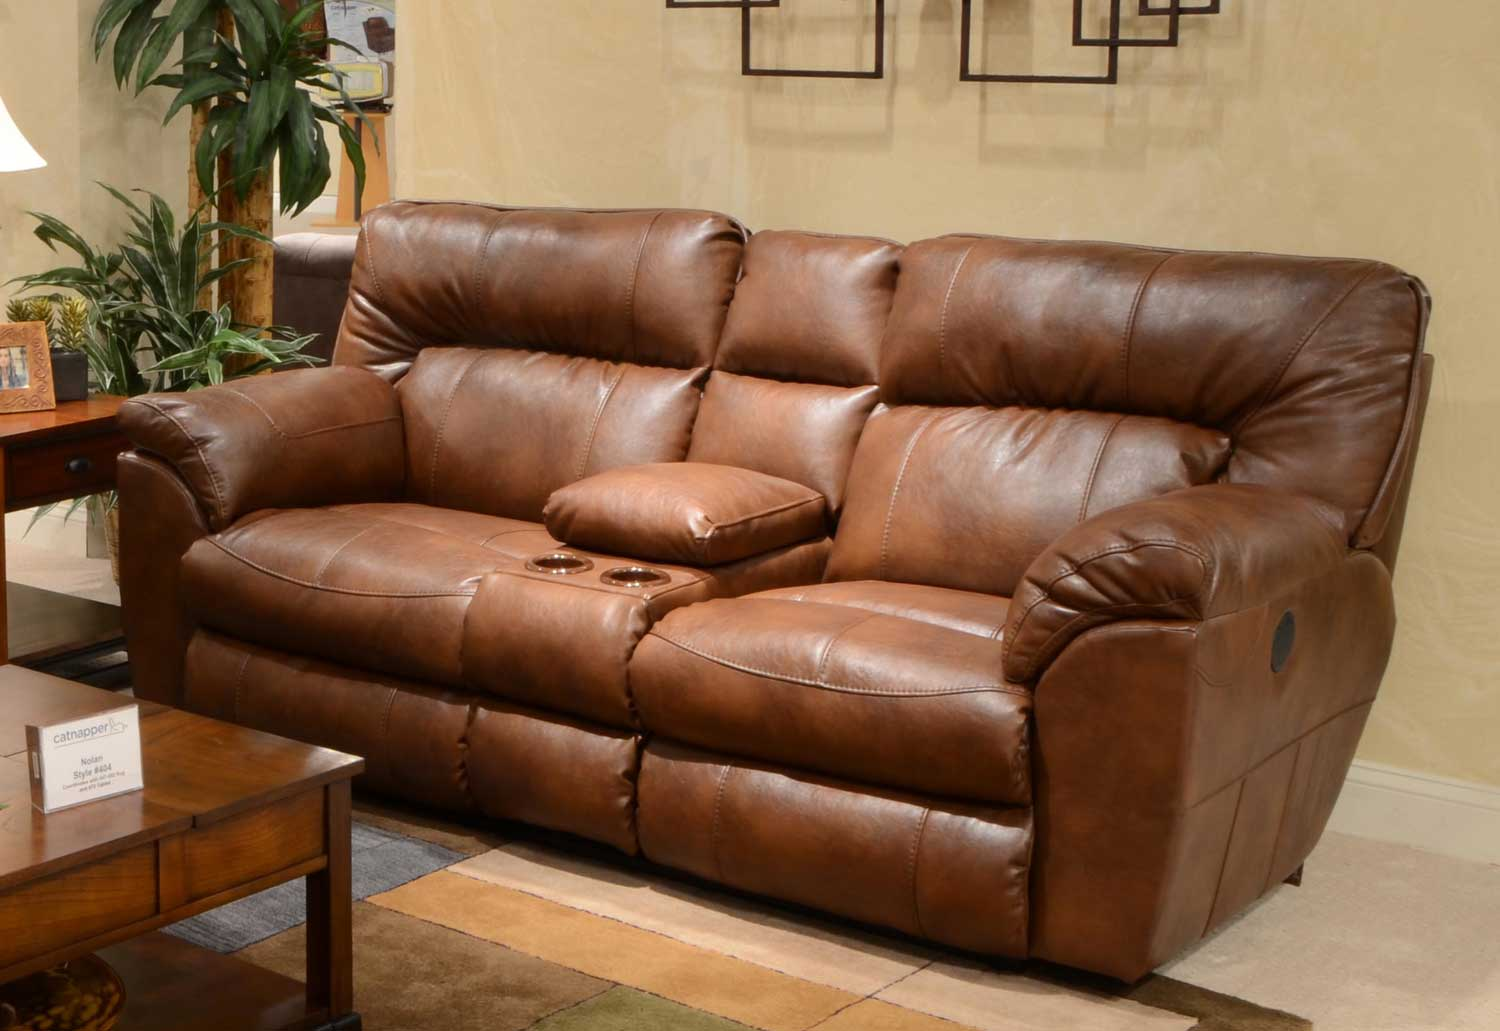 CatNapper Nolan Leather Extra Wide Reclining Console Loveseat with Storage and Cupholders - Chestnut